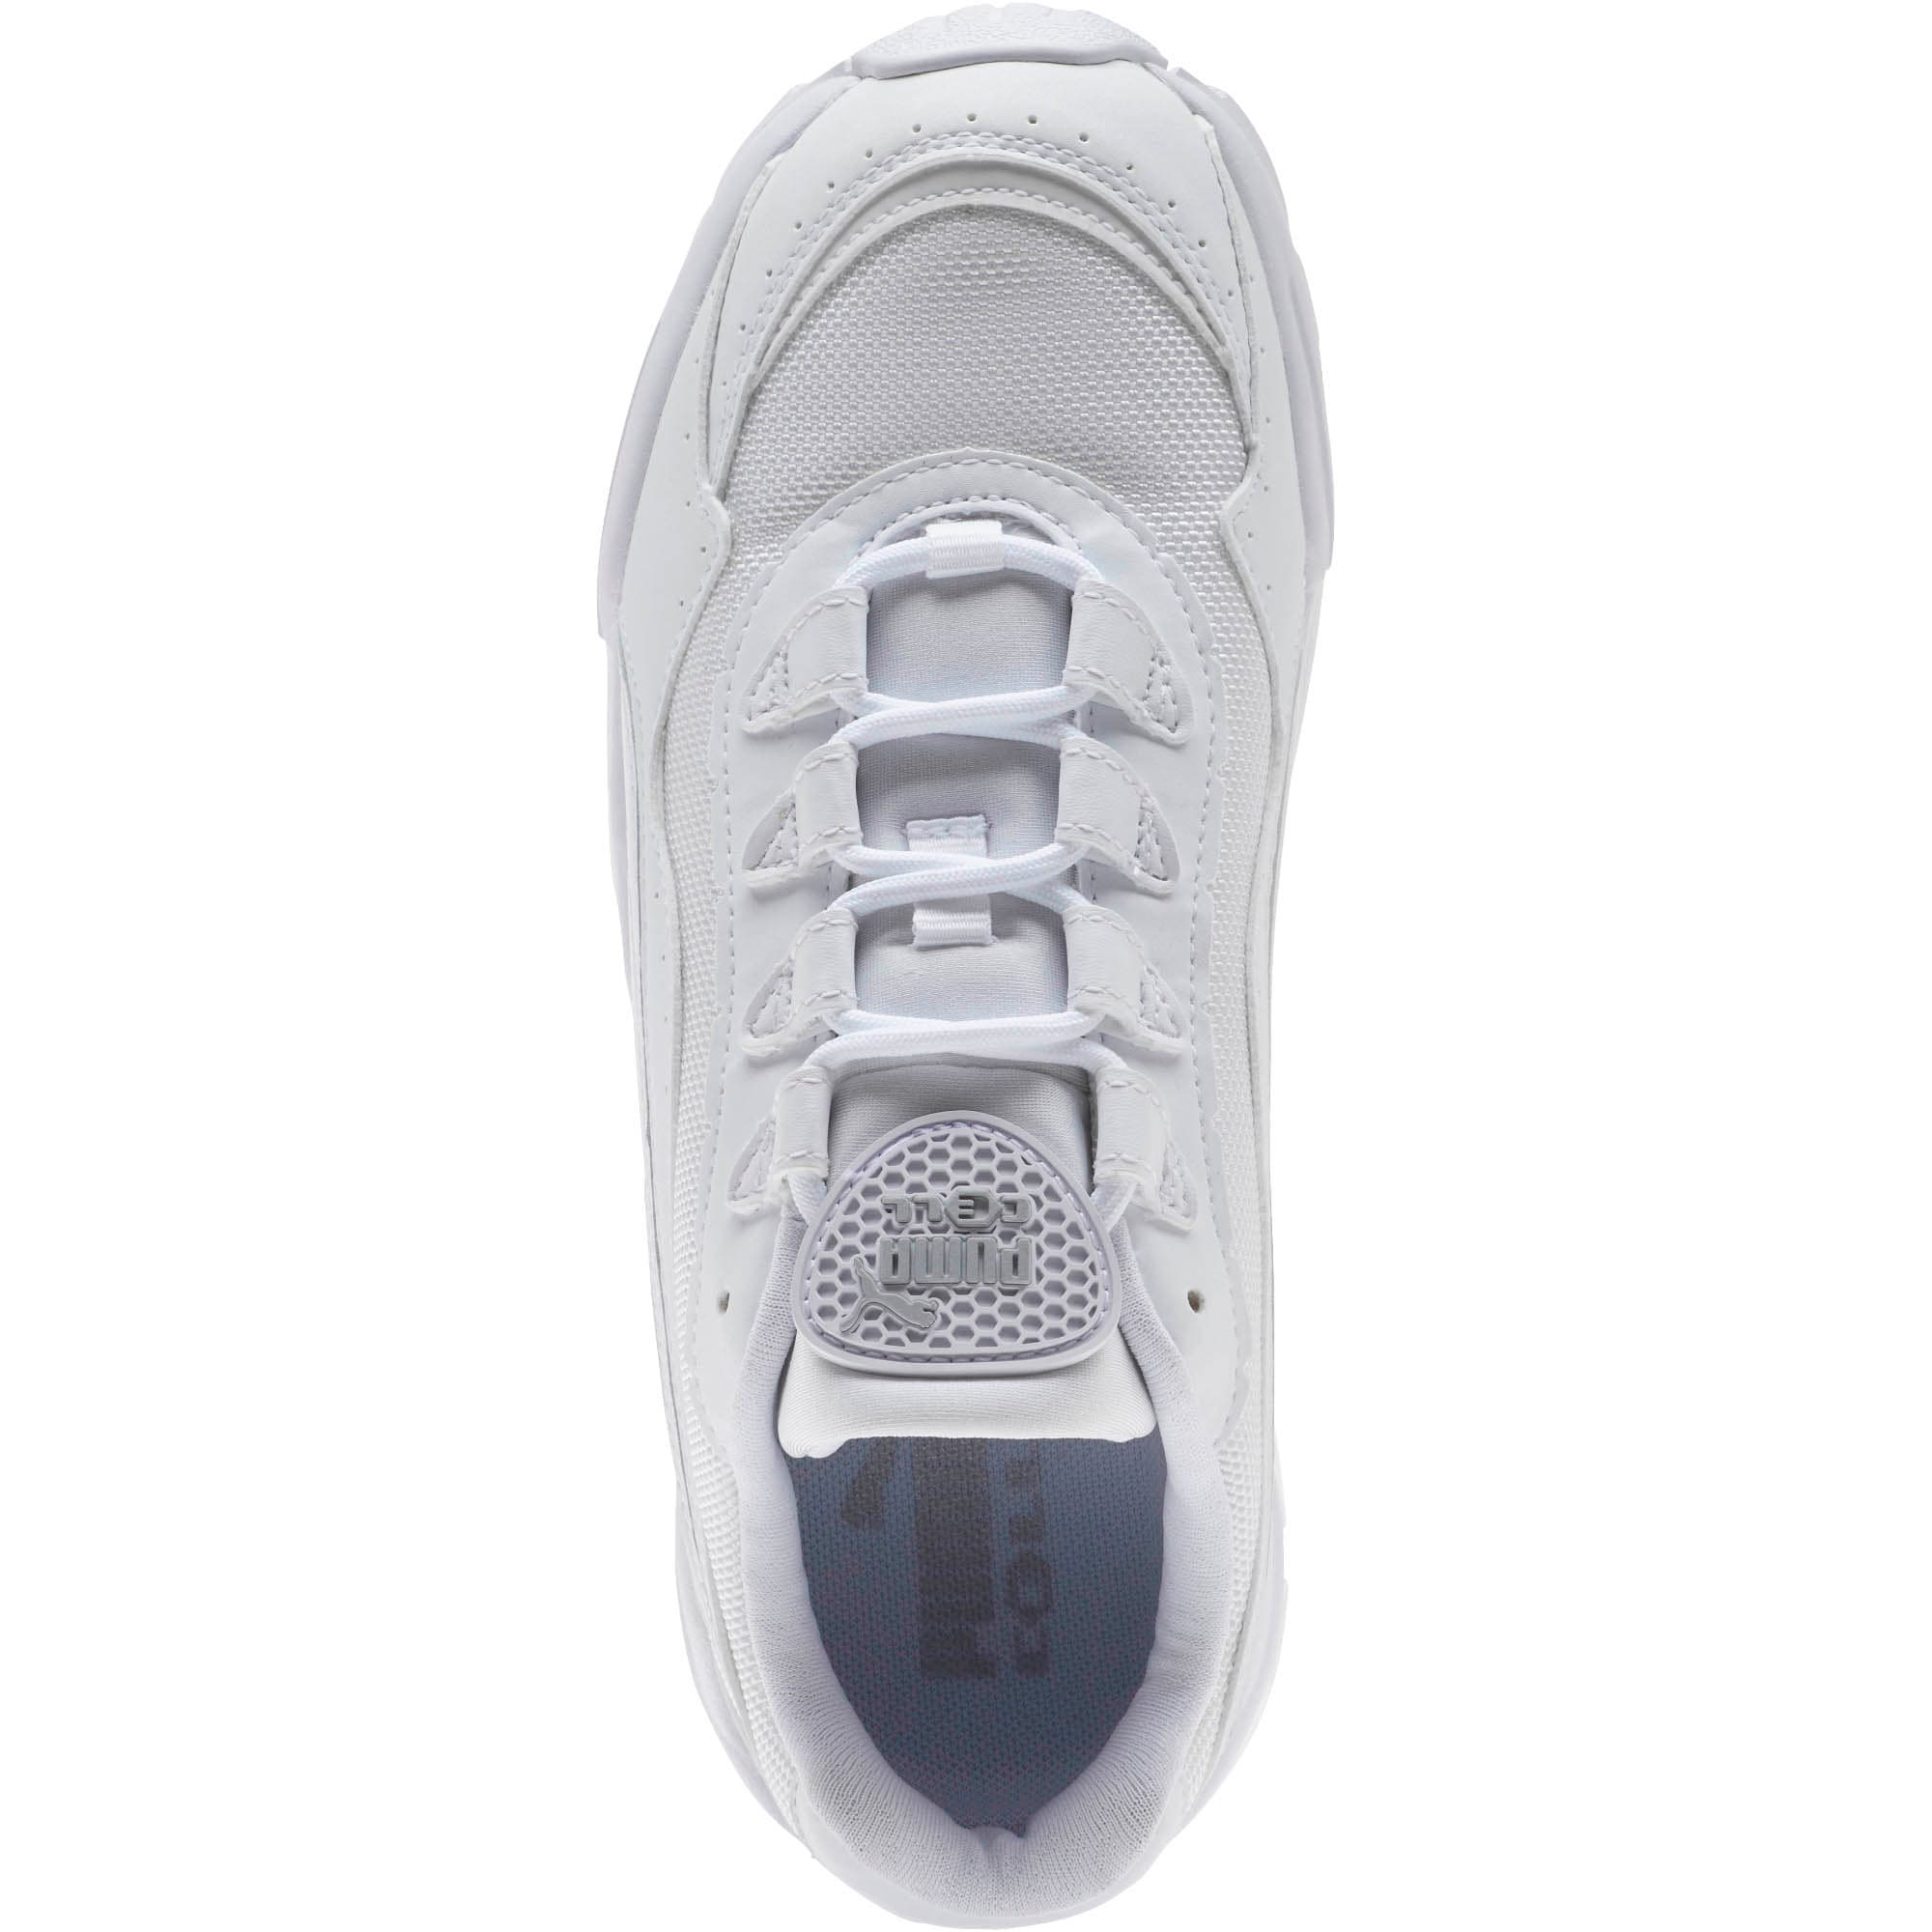 Thumbnail 5 of CELL Stellar Women's Sneakers, Puma White-Silver, medium